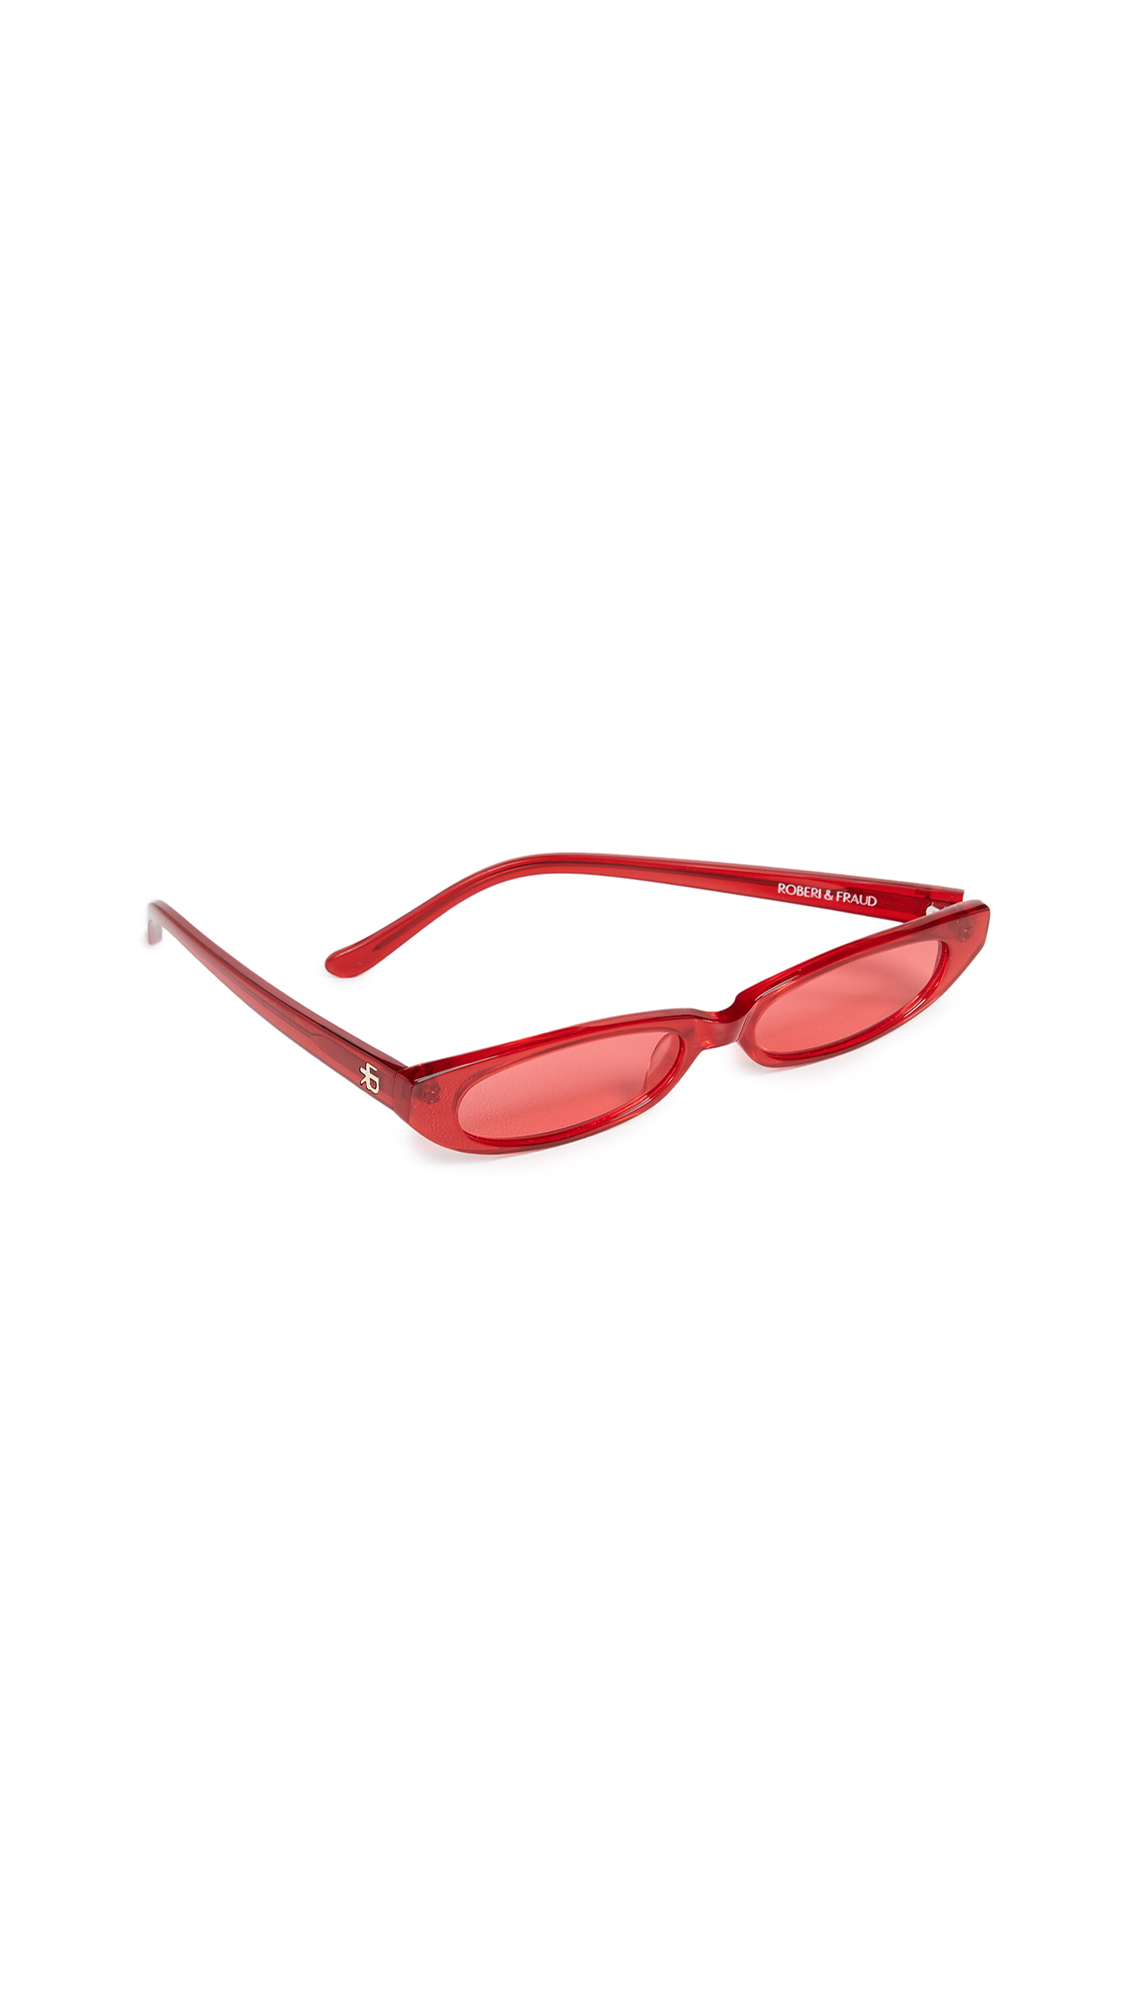 ROBERI & FRAUD Frances Sunglasses in Red